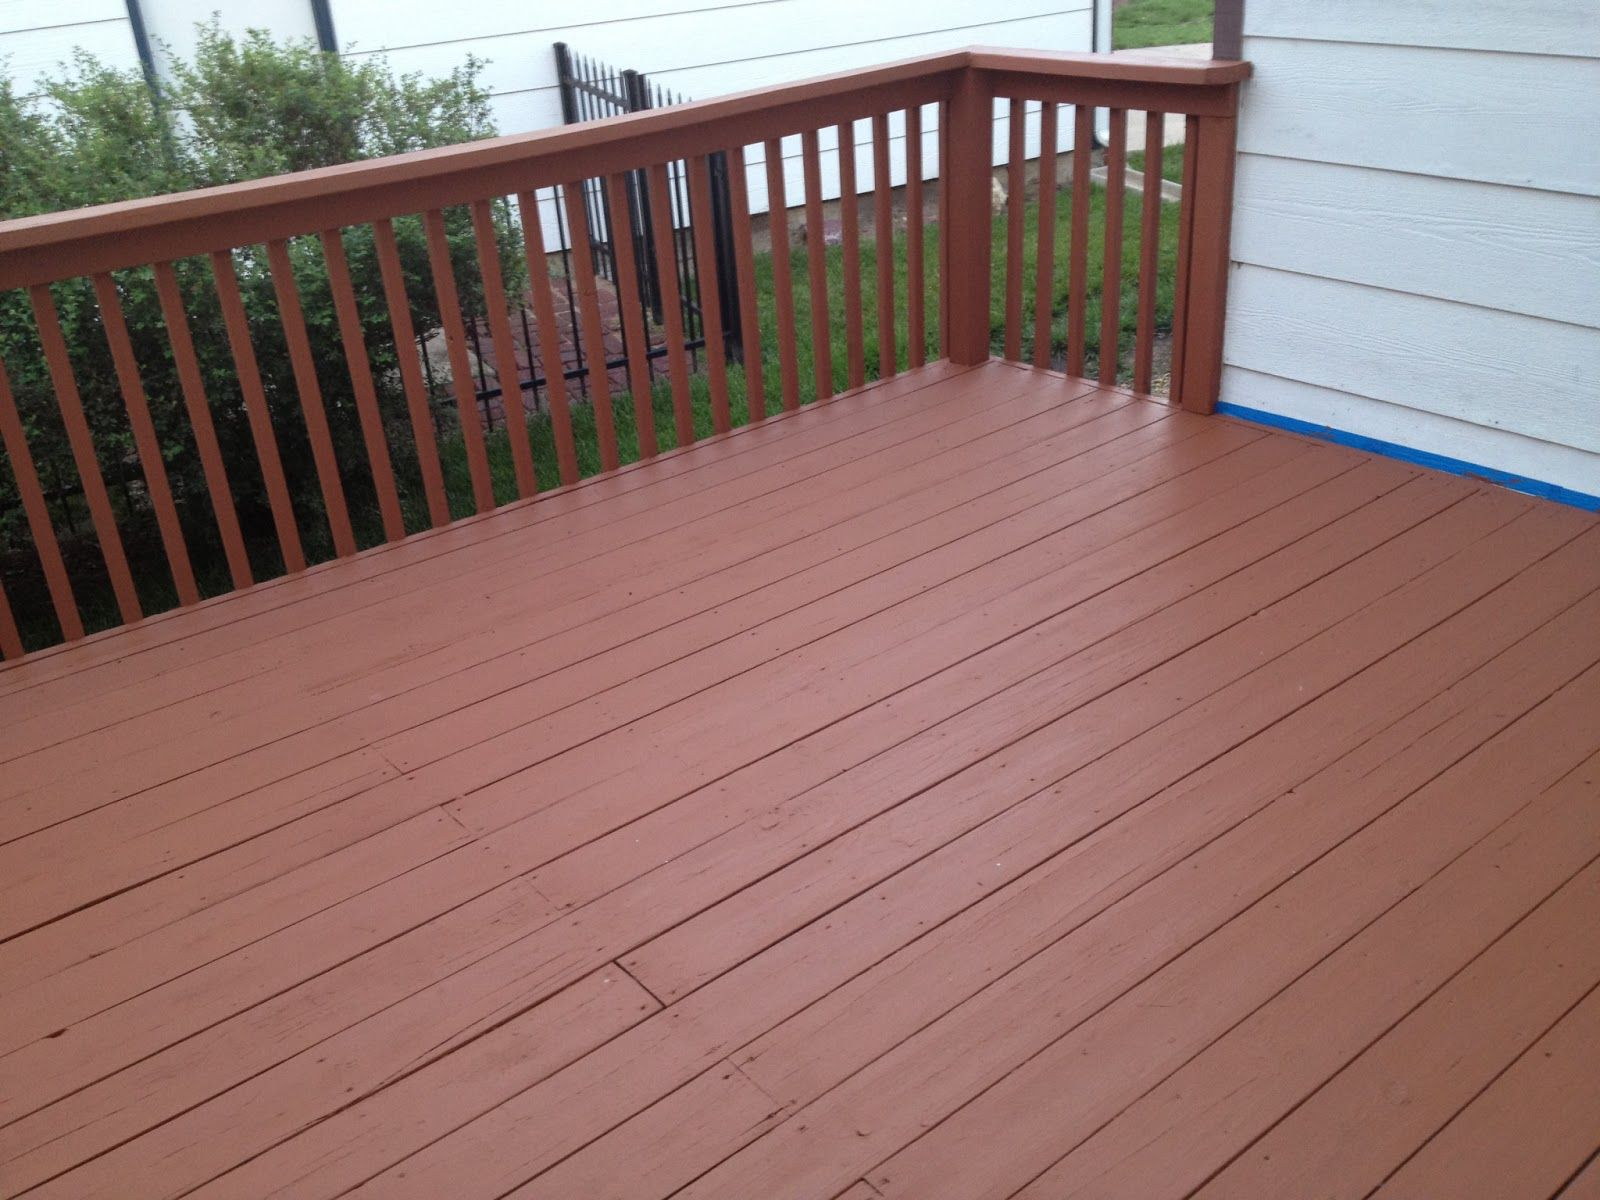 Behr deckover cappuccino solid color behr weatherproof wood behr deck cover up nvjuhfo Image collections